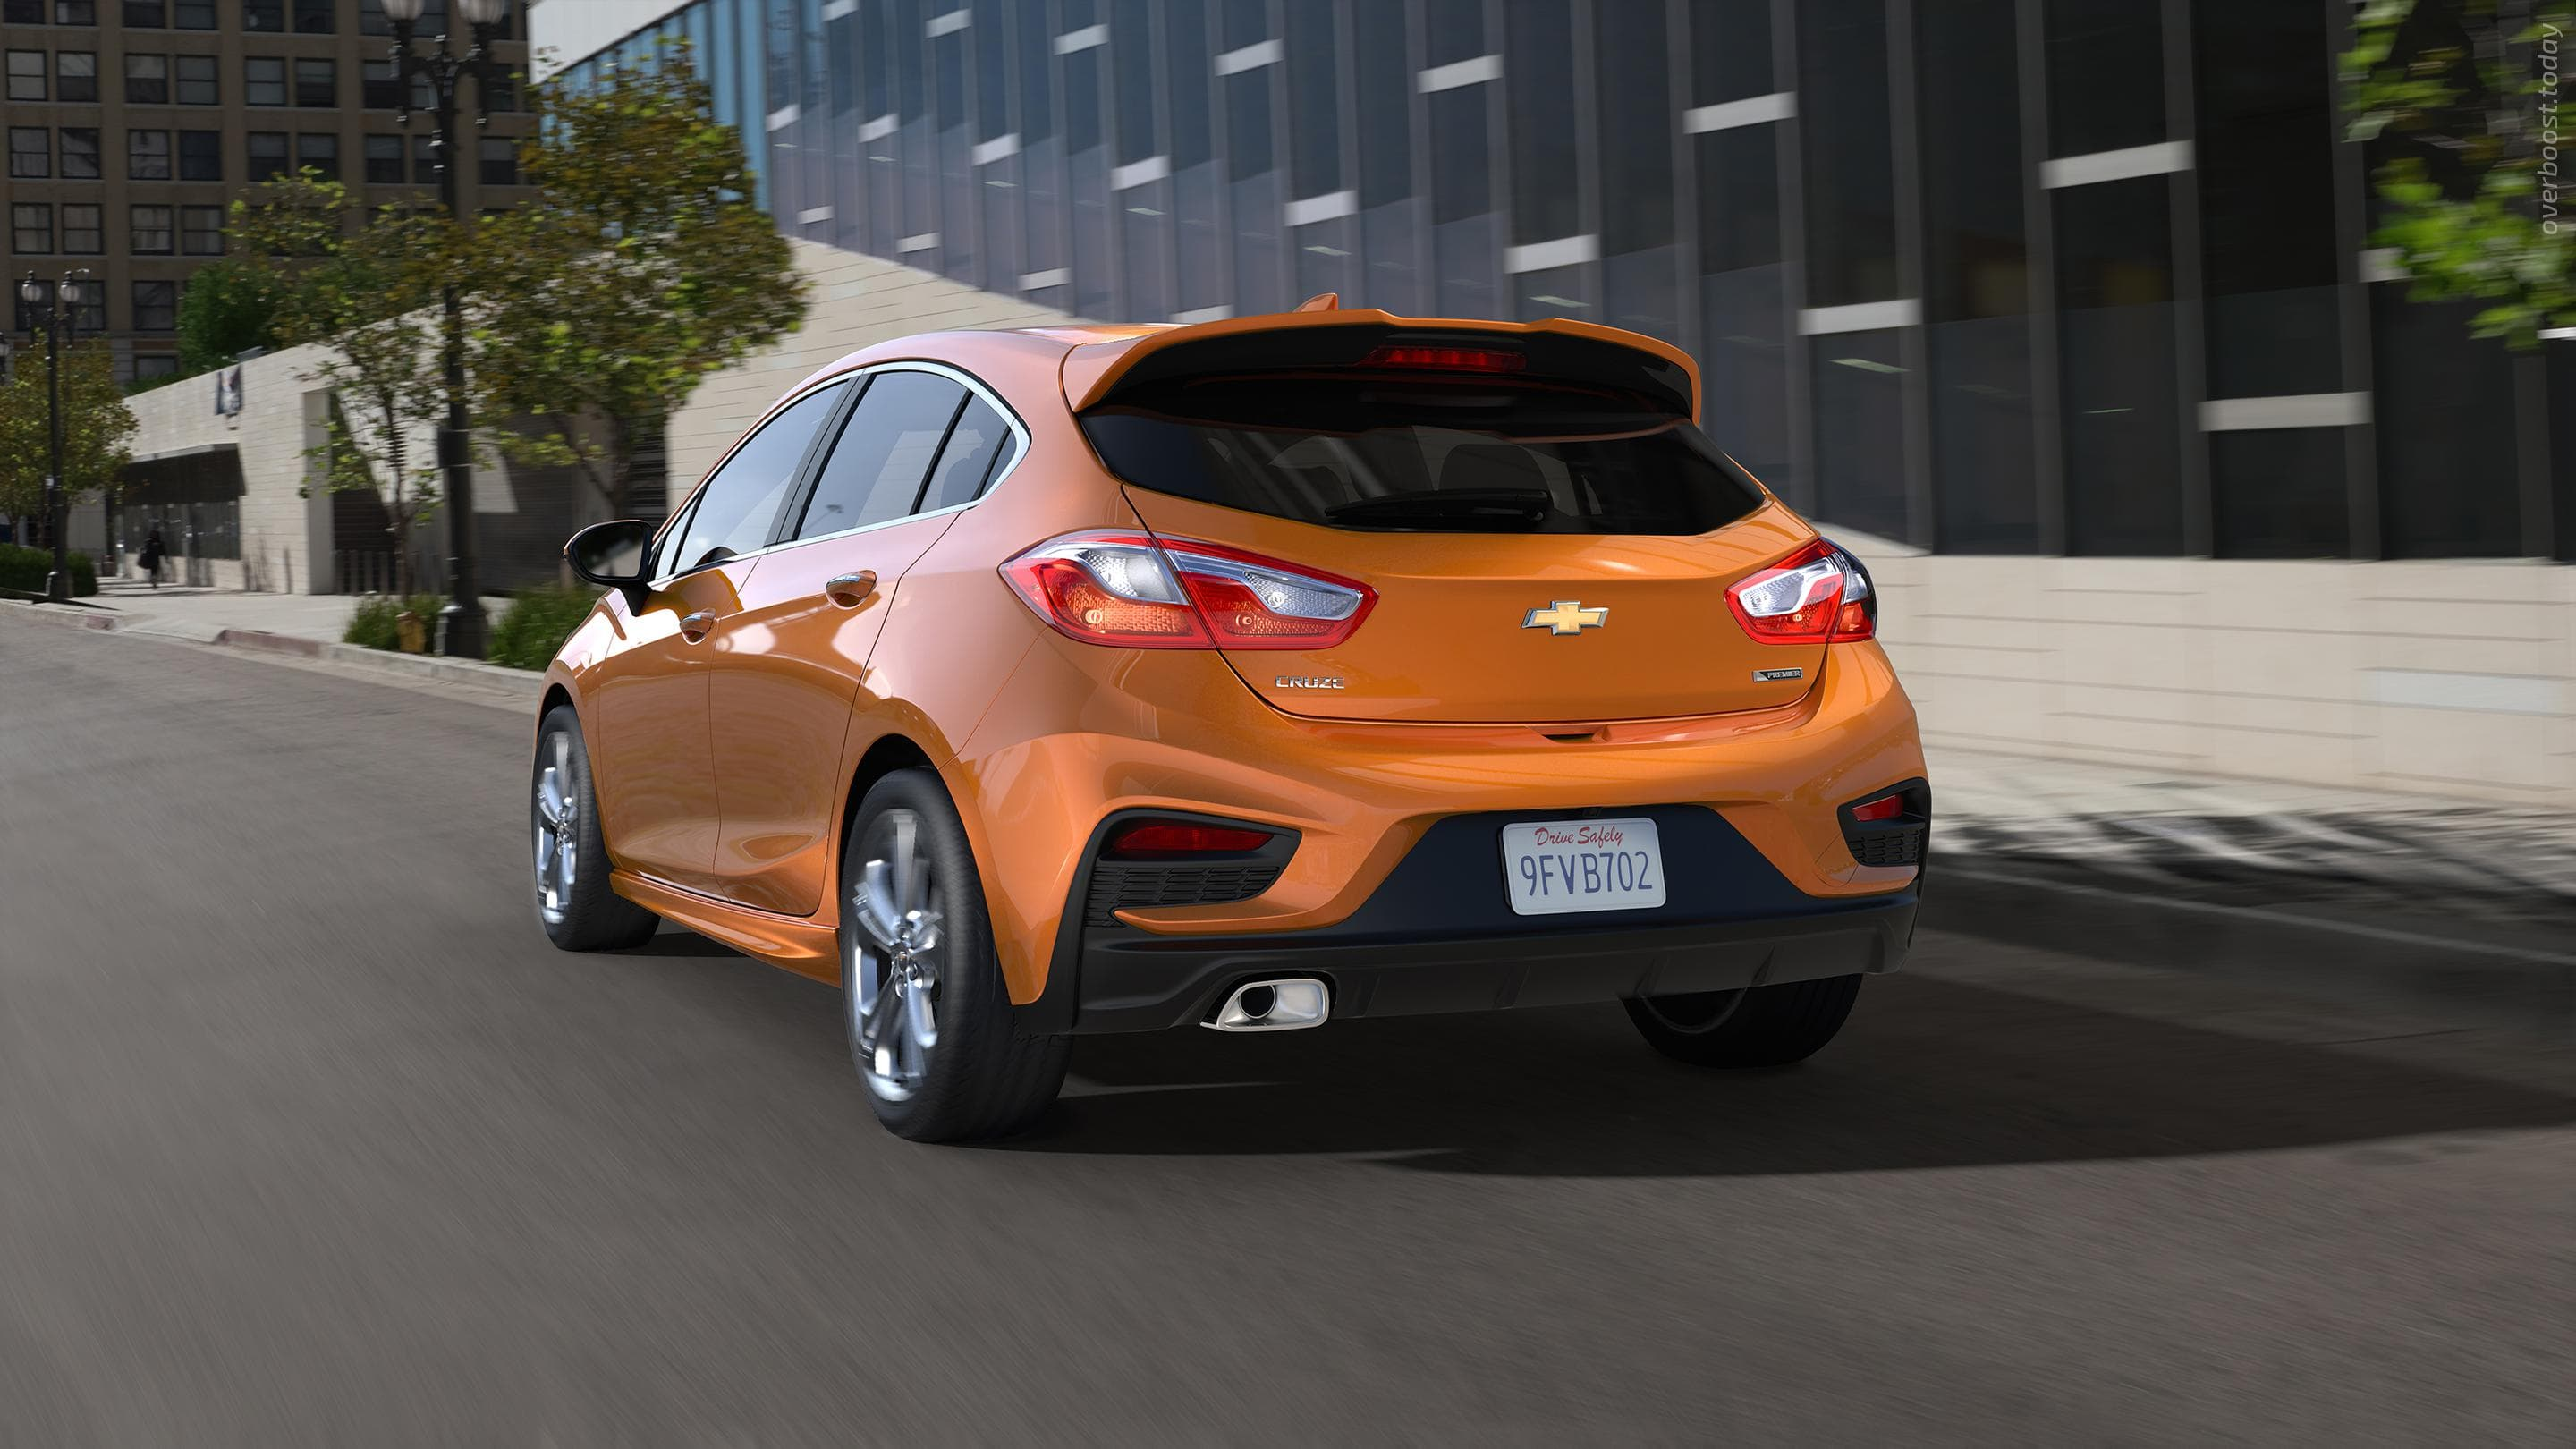 Chevrolet Cruze 2 Hatchback HD pics